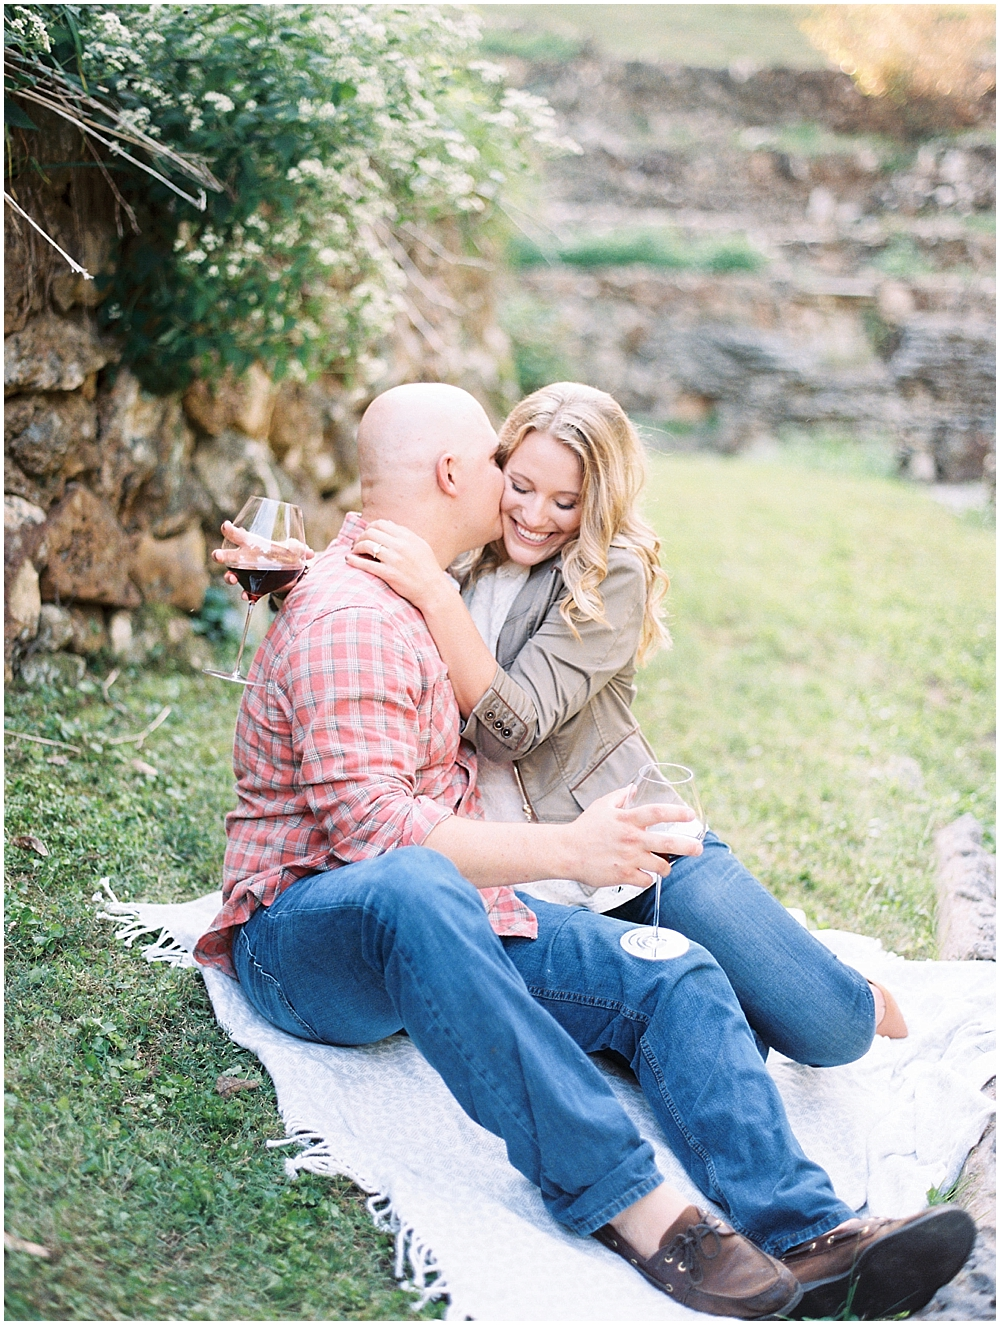 Romantic engagement photos in a rock garden